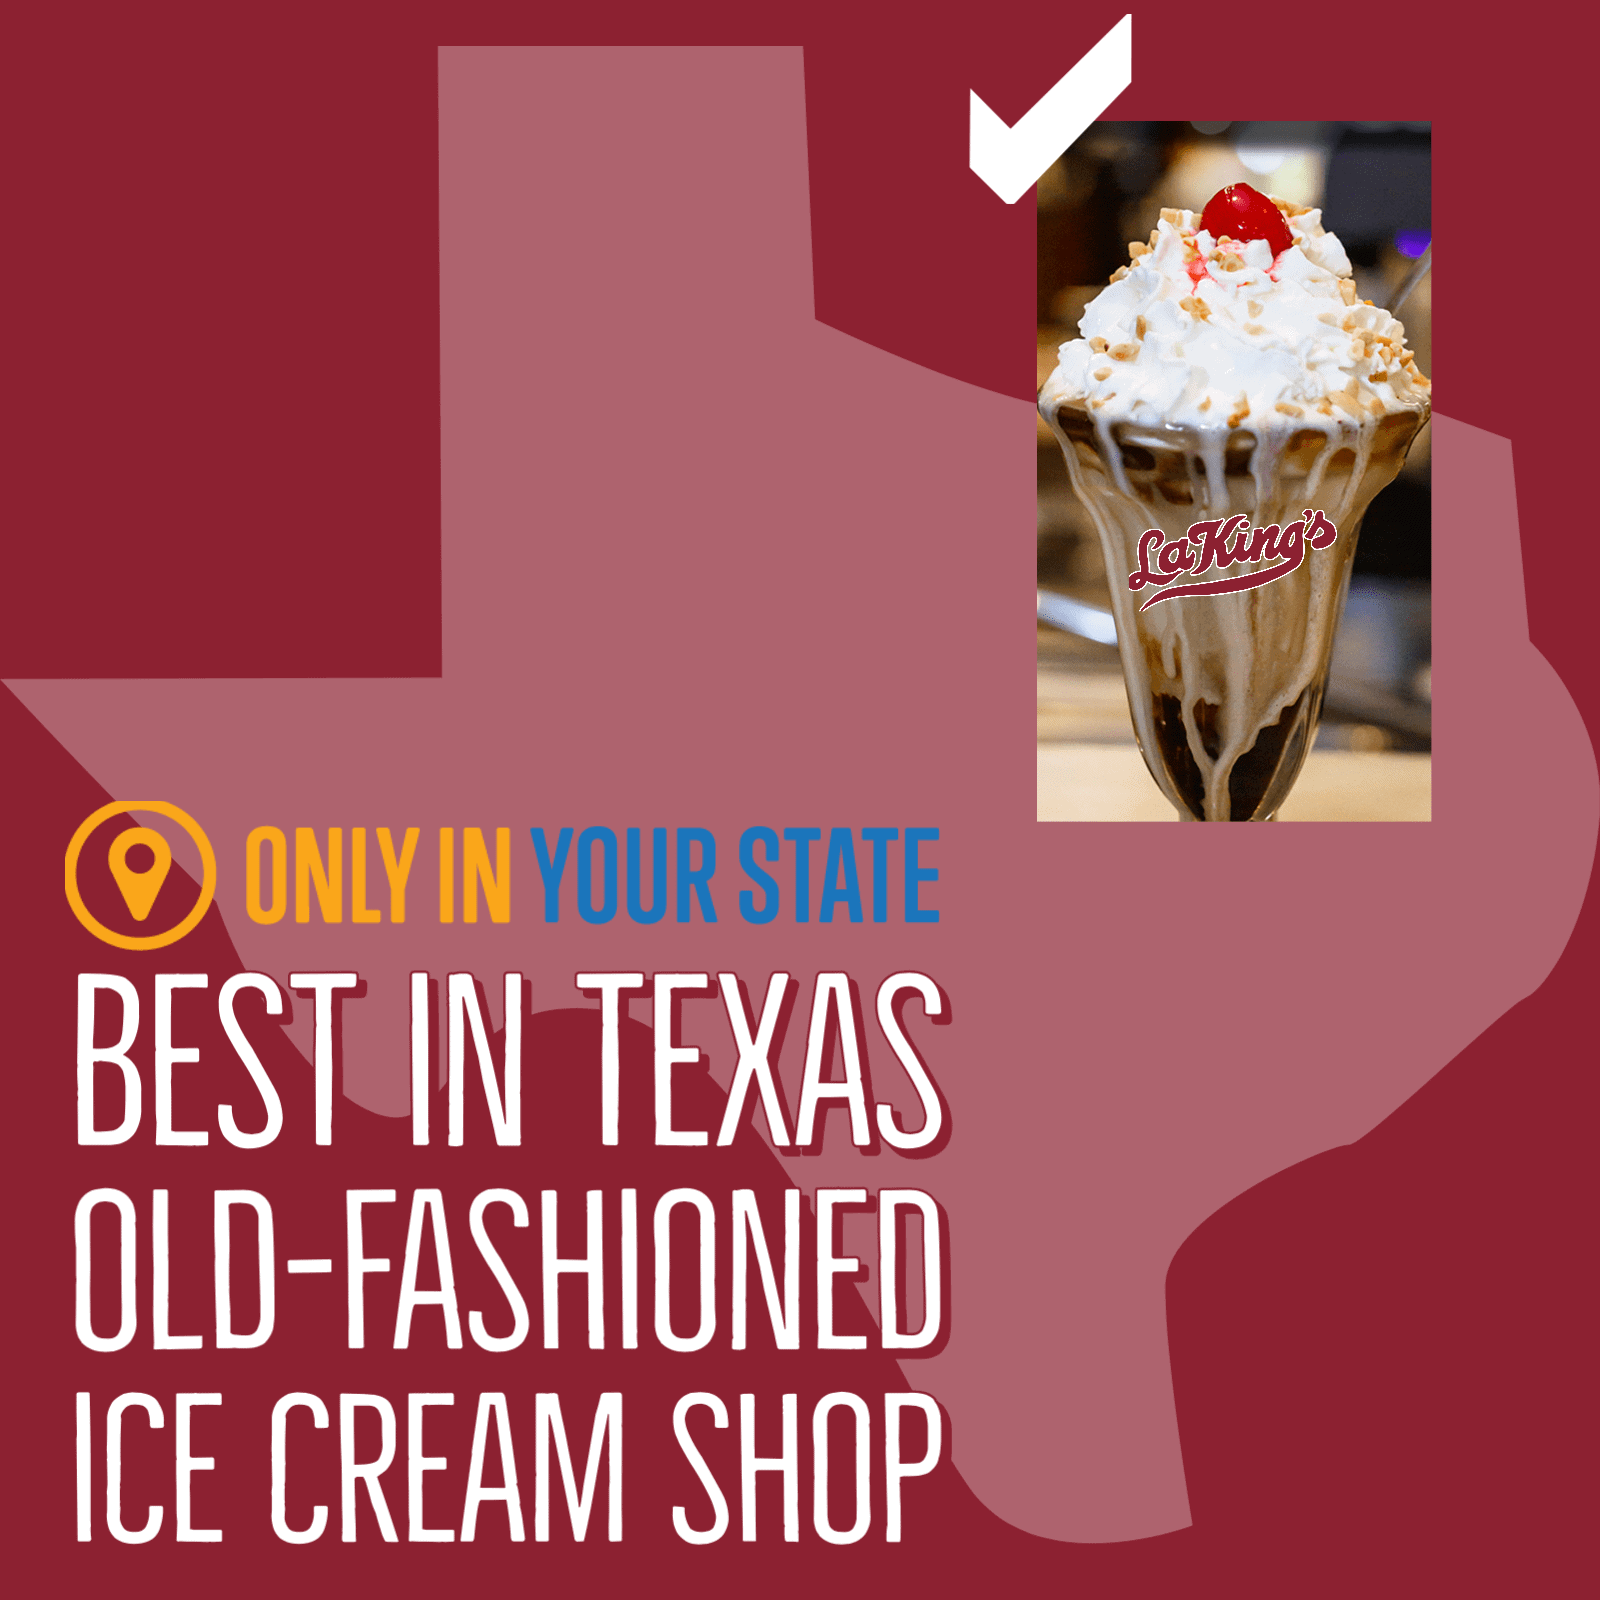 only-in-your-state-best-old-fashioned-ice-cream